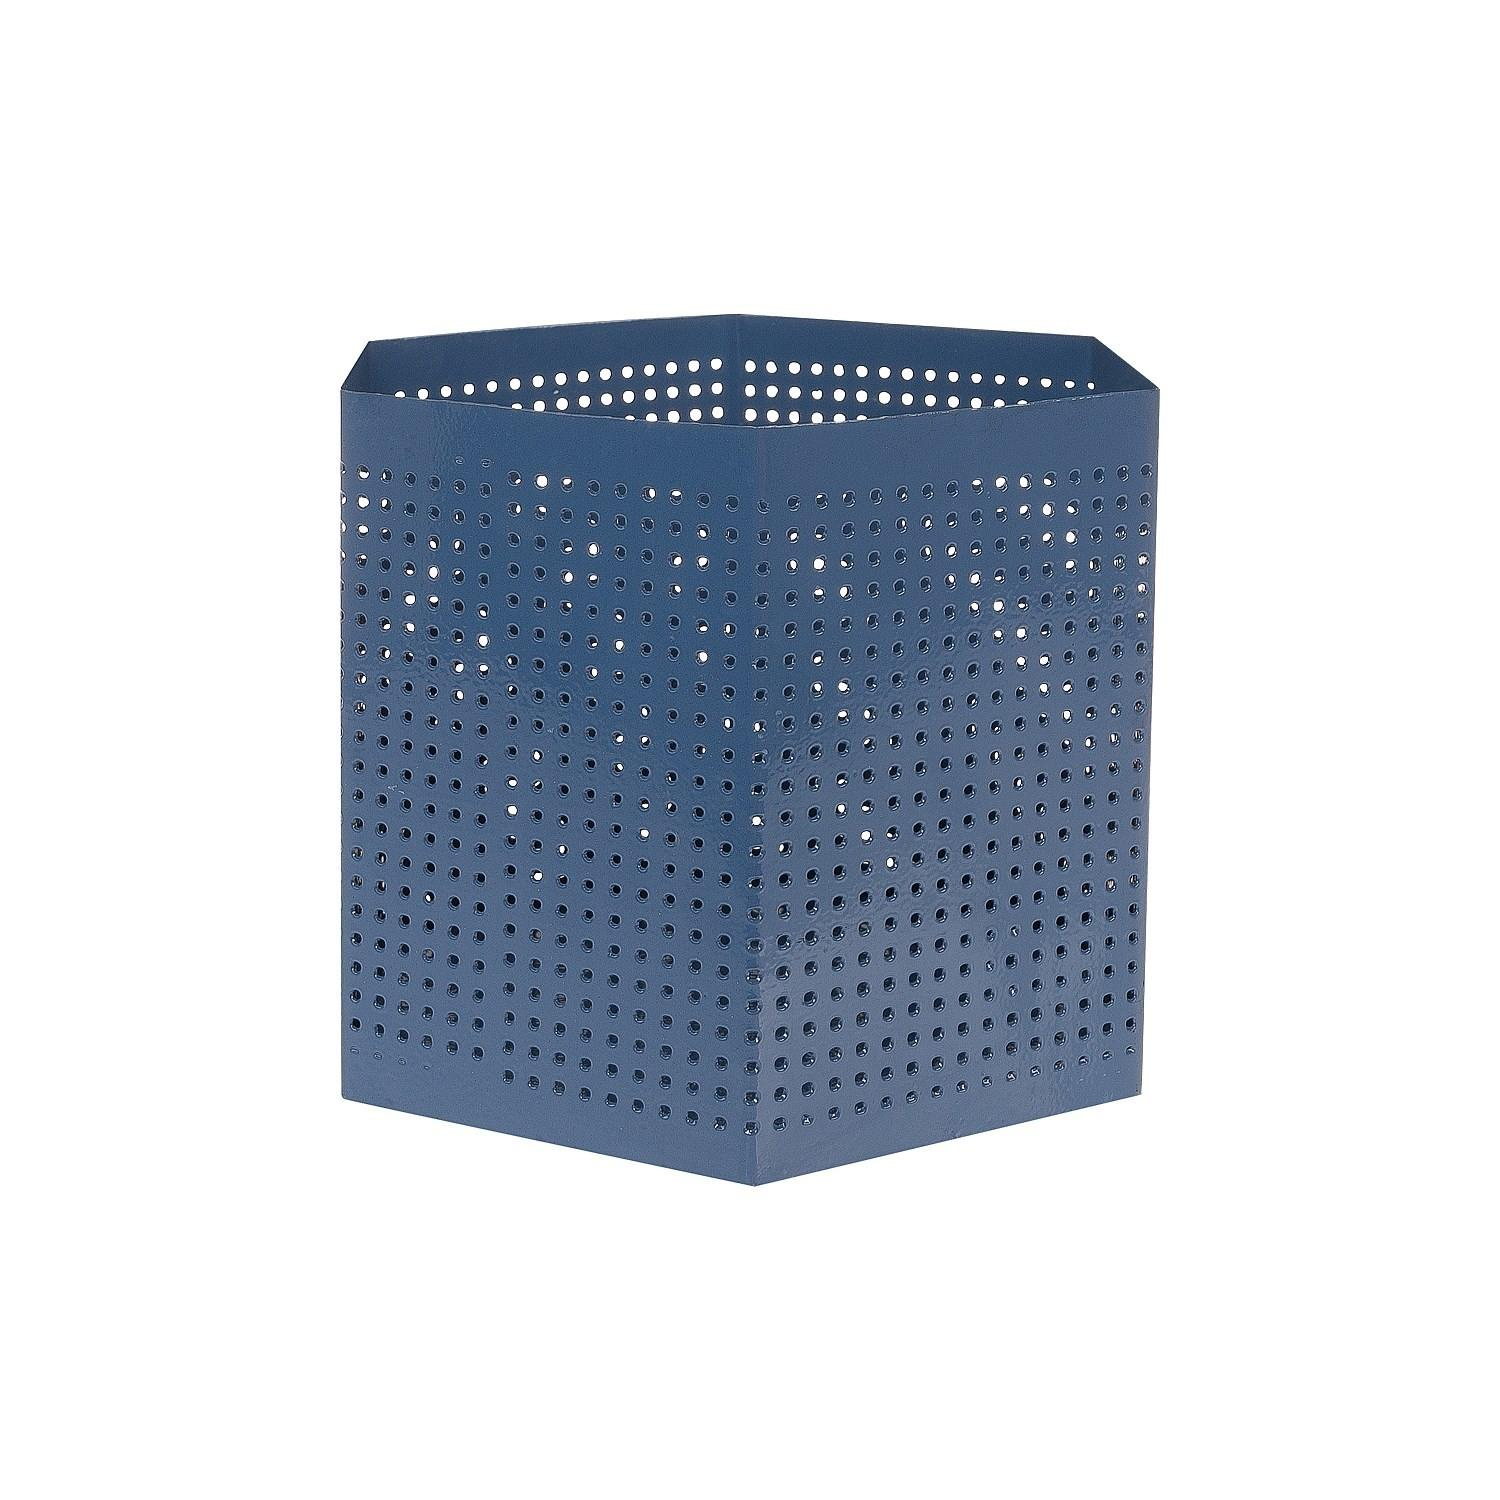 Bowls Vessels Accessories Perforated Vessel 15cm